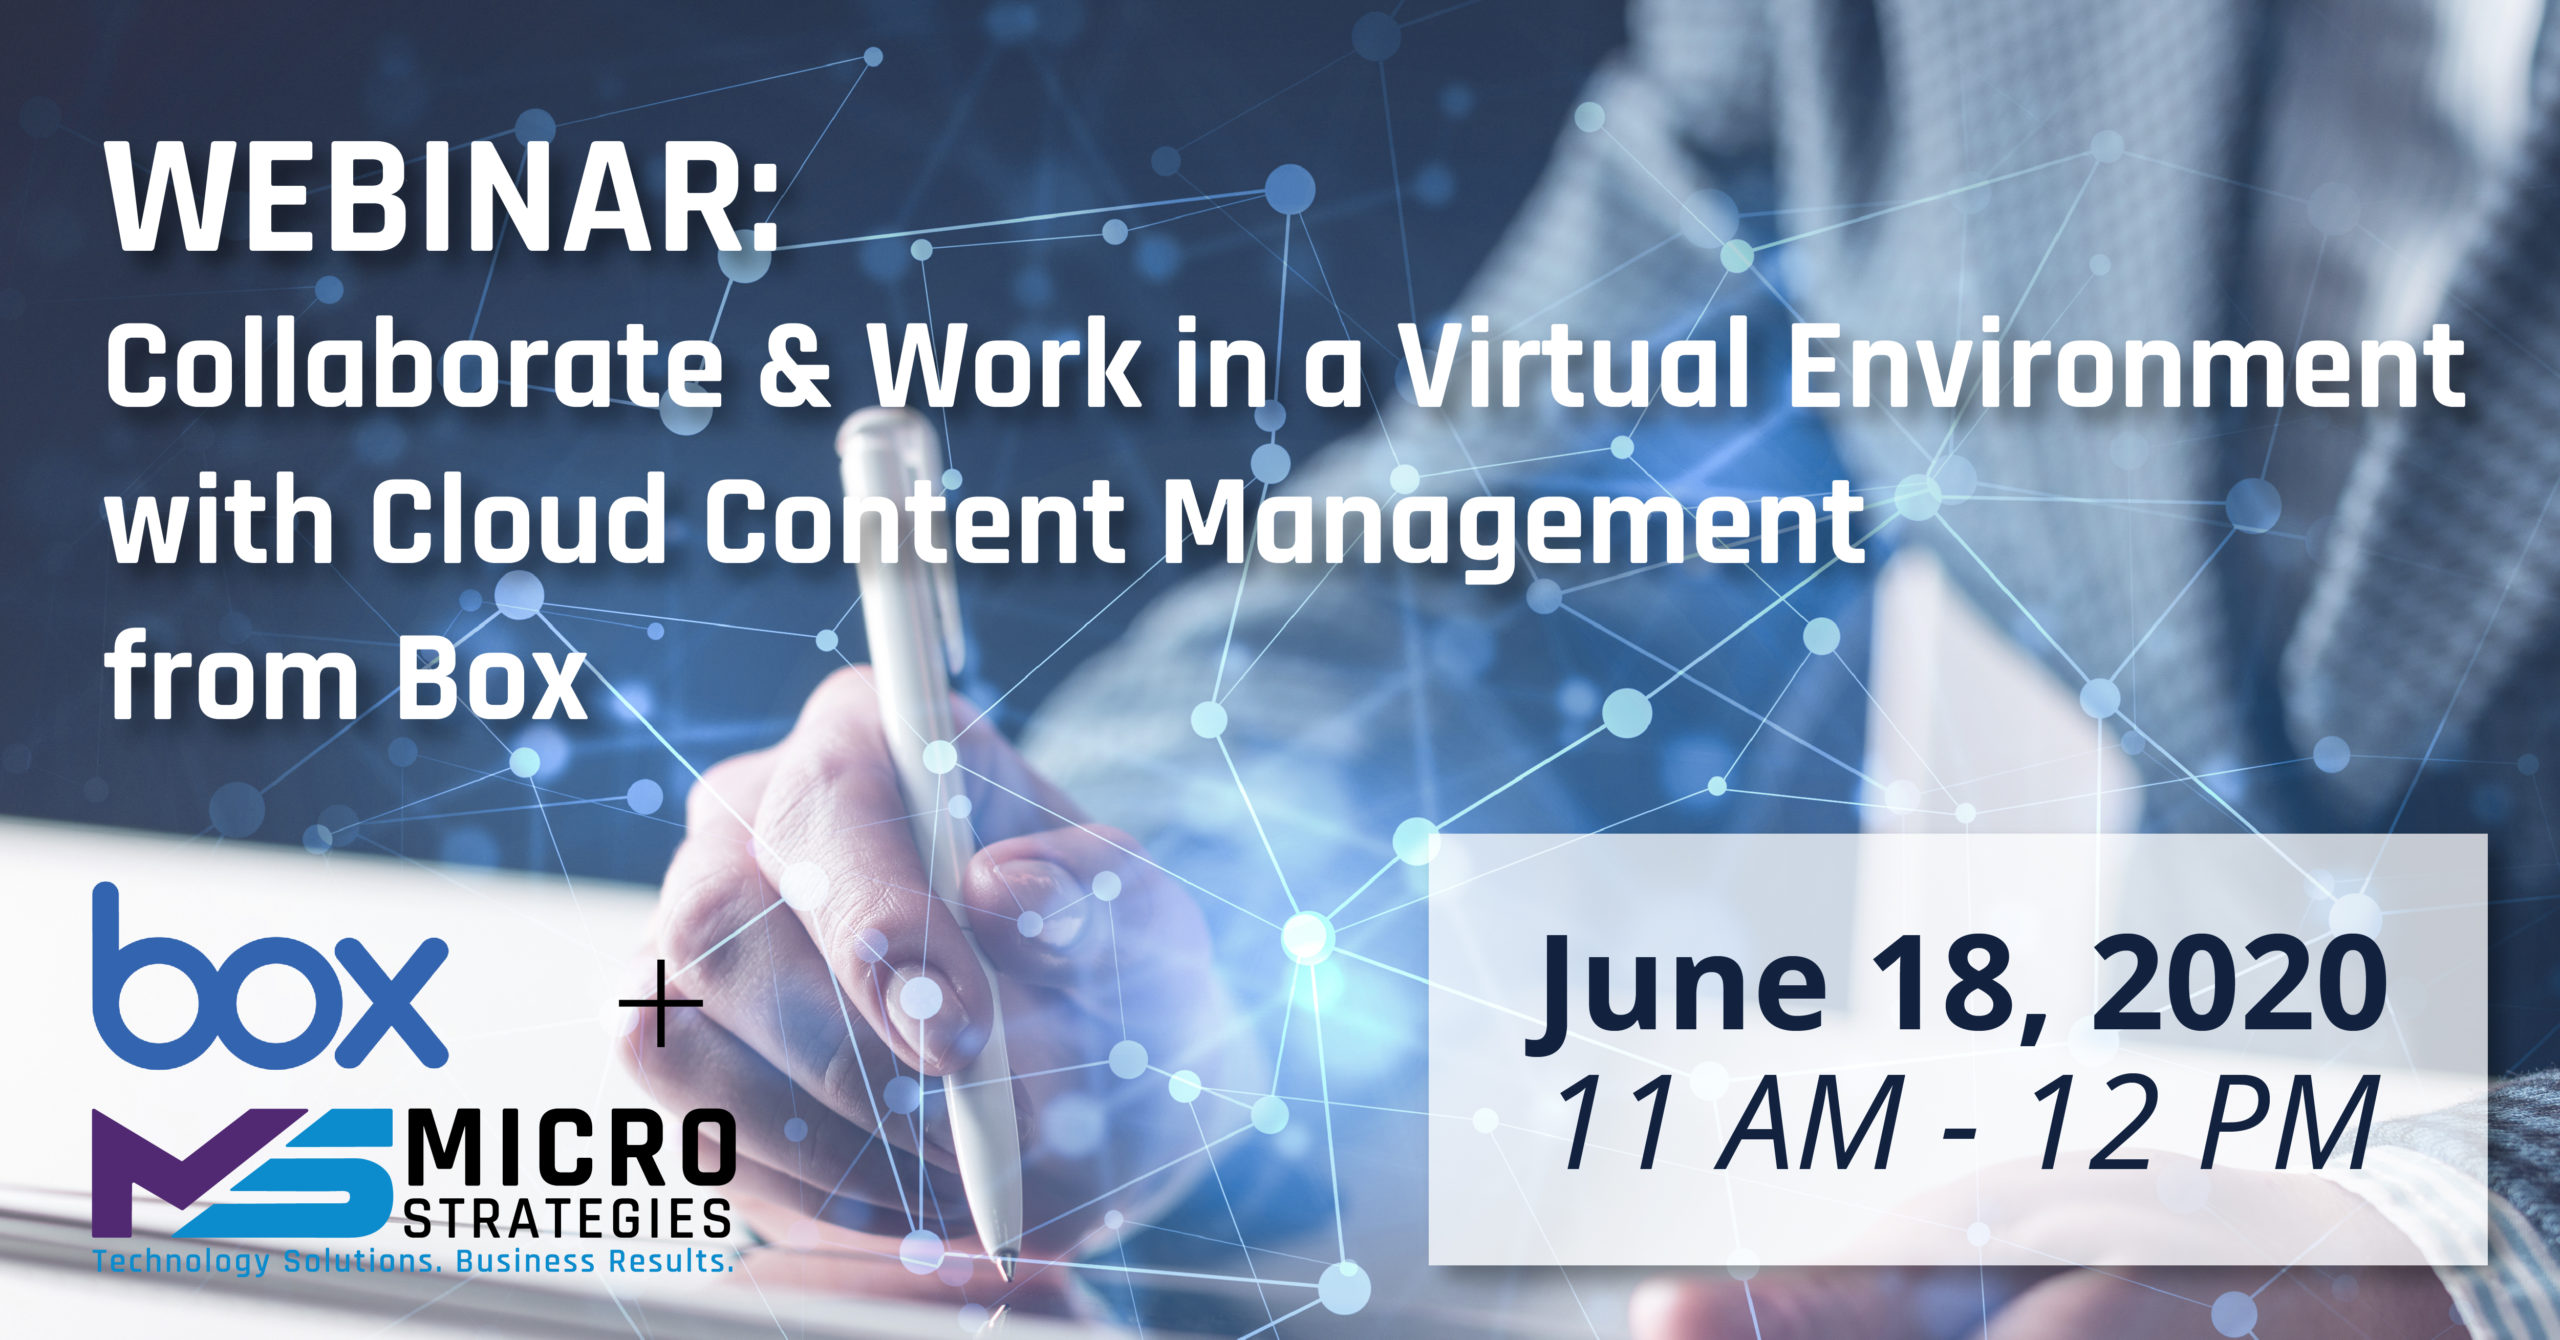 Collaborate & Work in a Virtual Environment with Cloud Content Management from Box